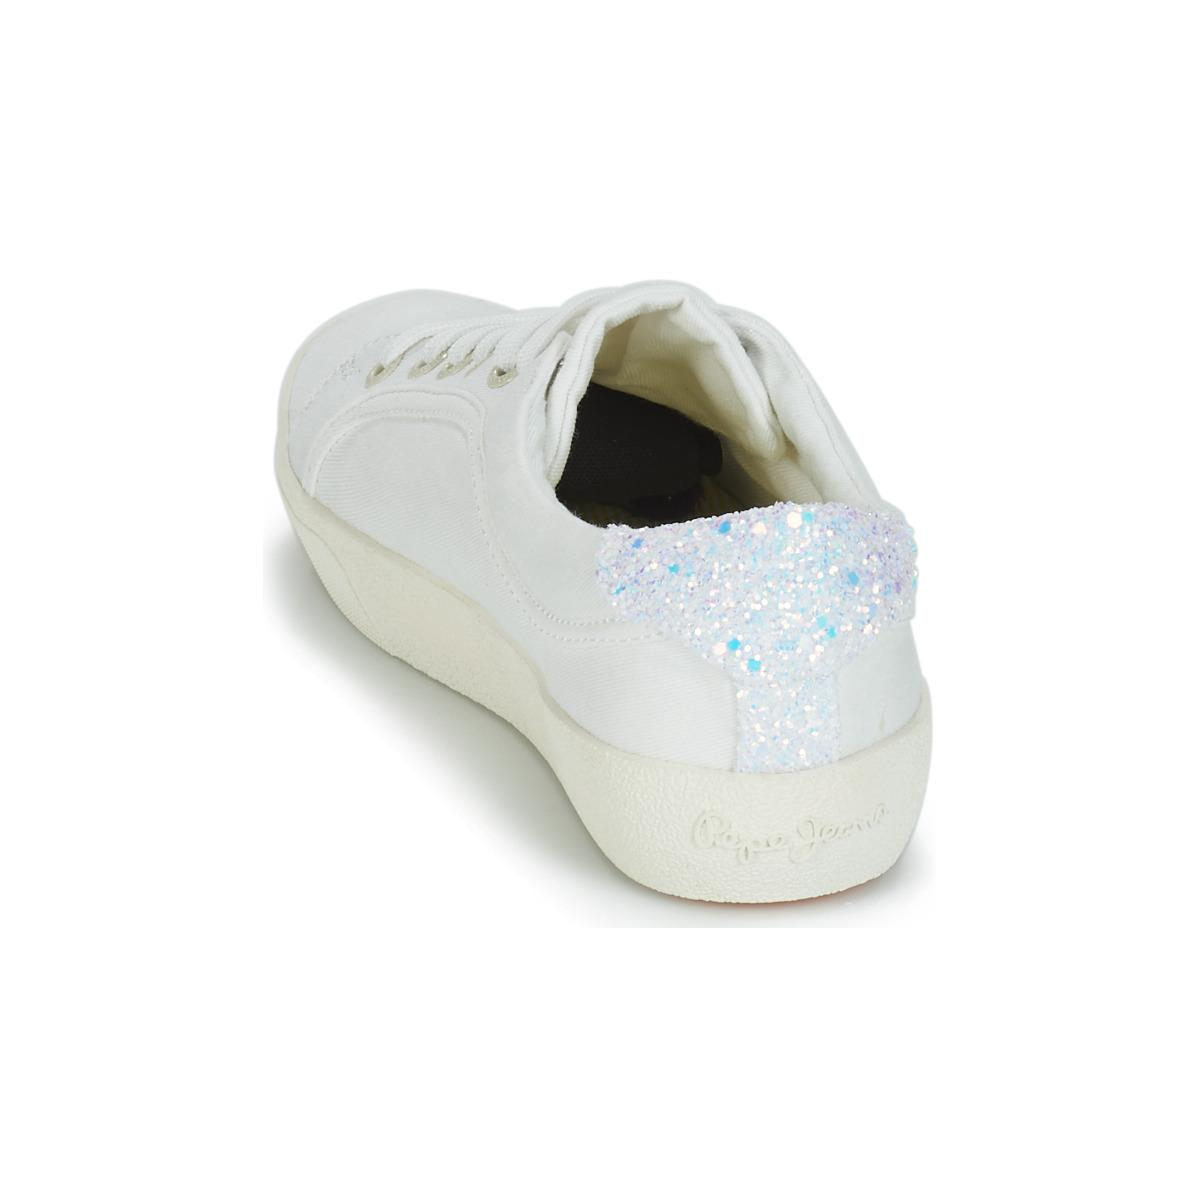 875de6beb08 Pepe Jeans Rene Surf Shoes (trainers) in White - Lyst